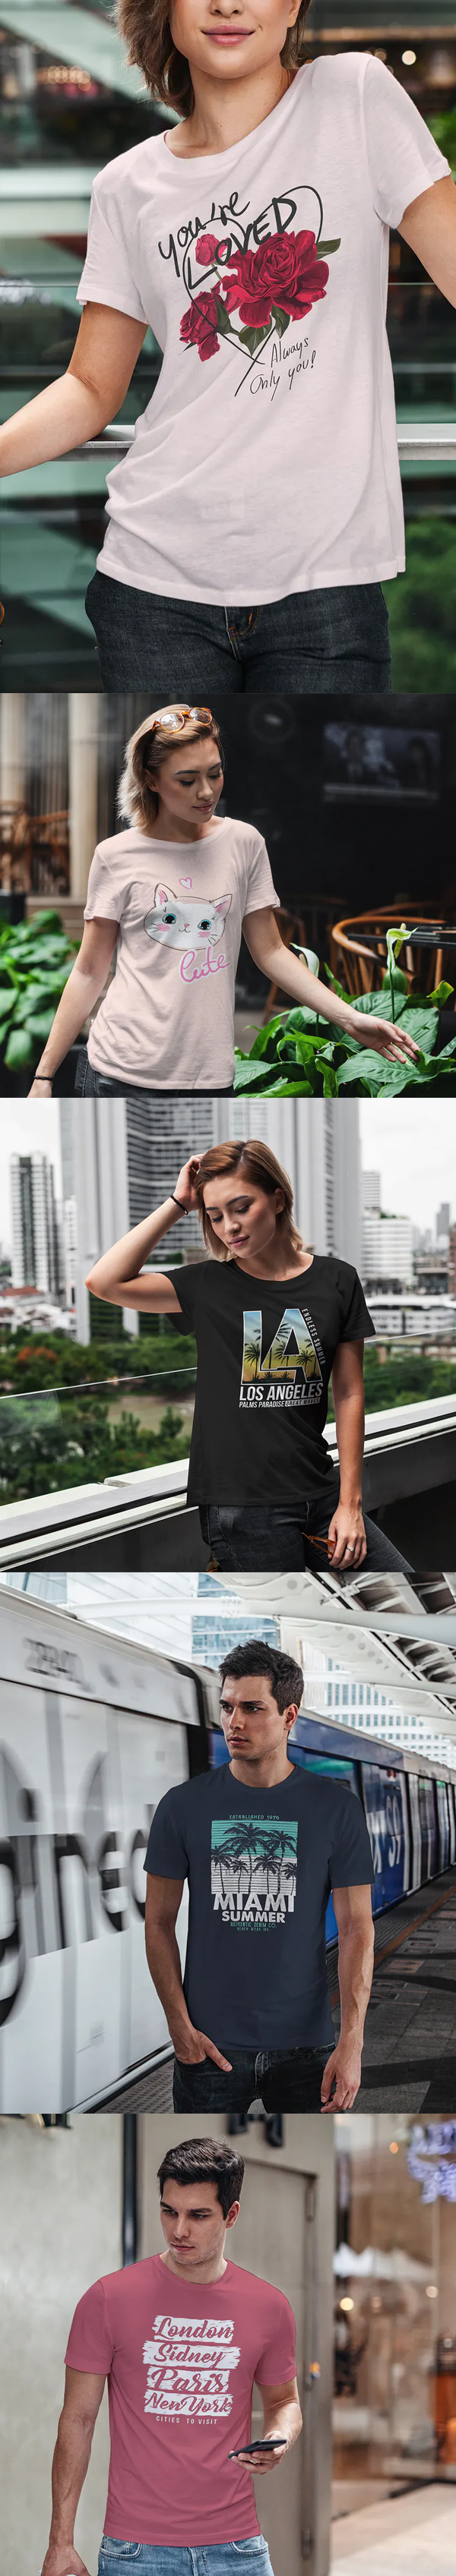 Awesome T-Shirt Mock-Up Urban Style